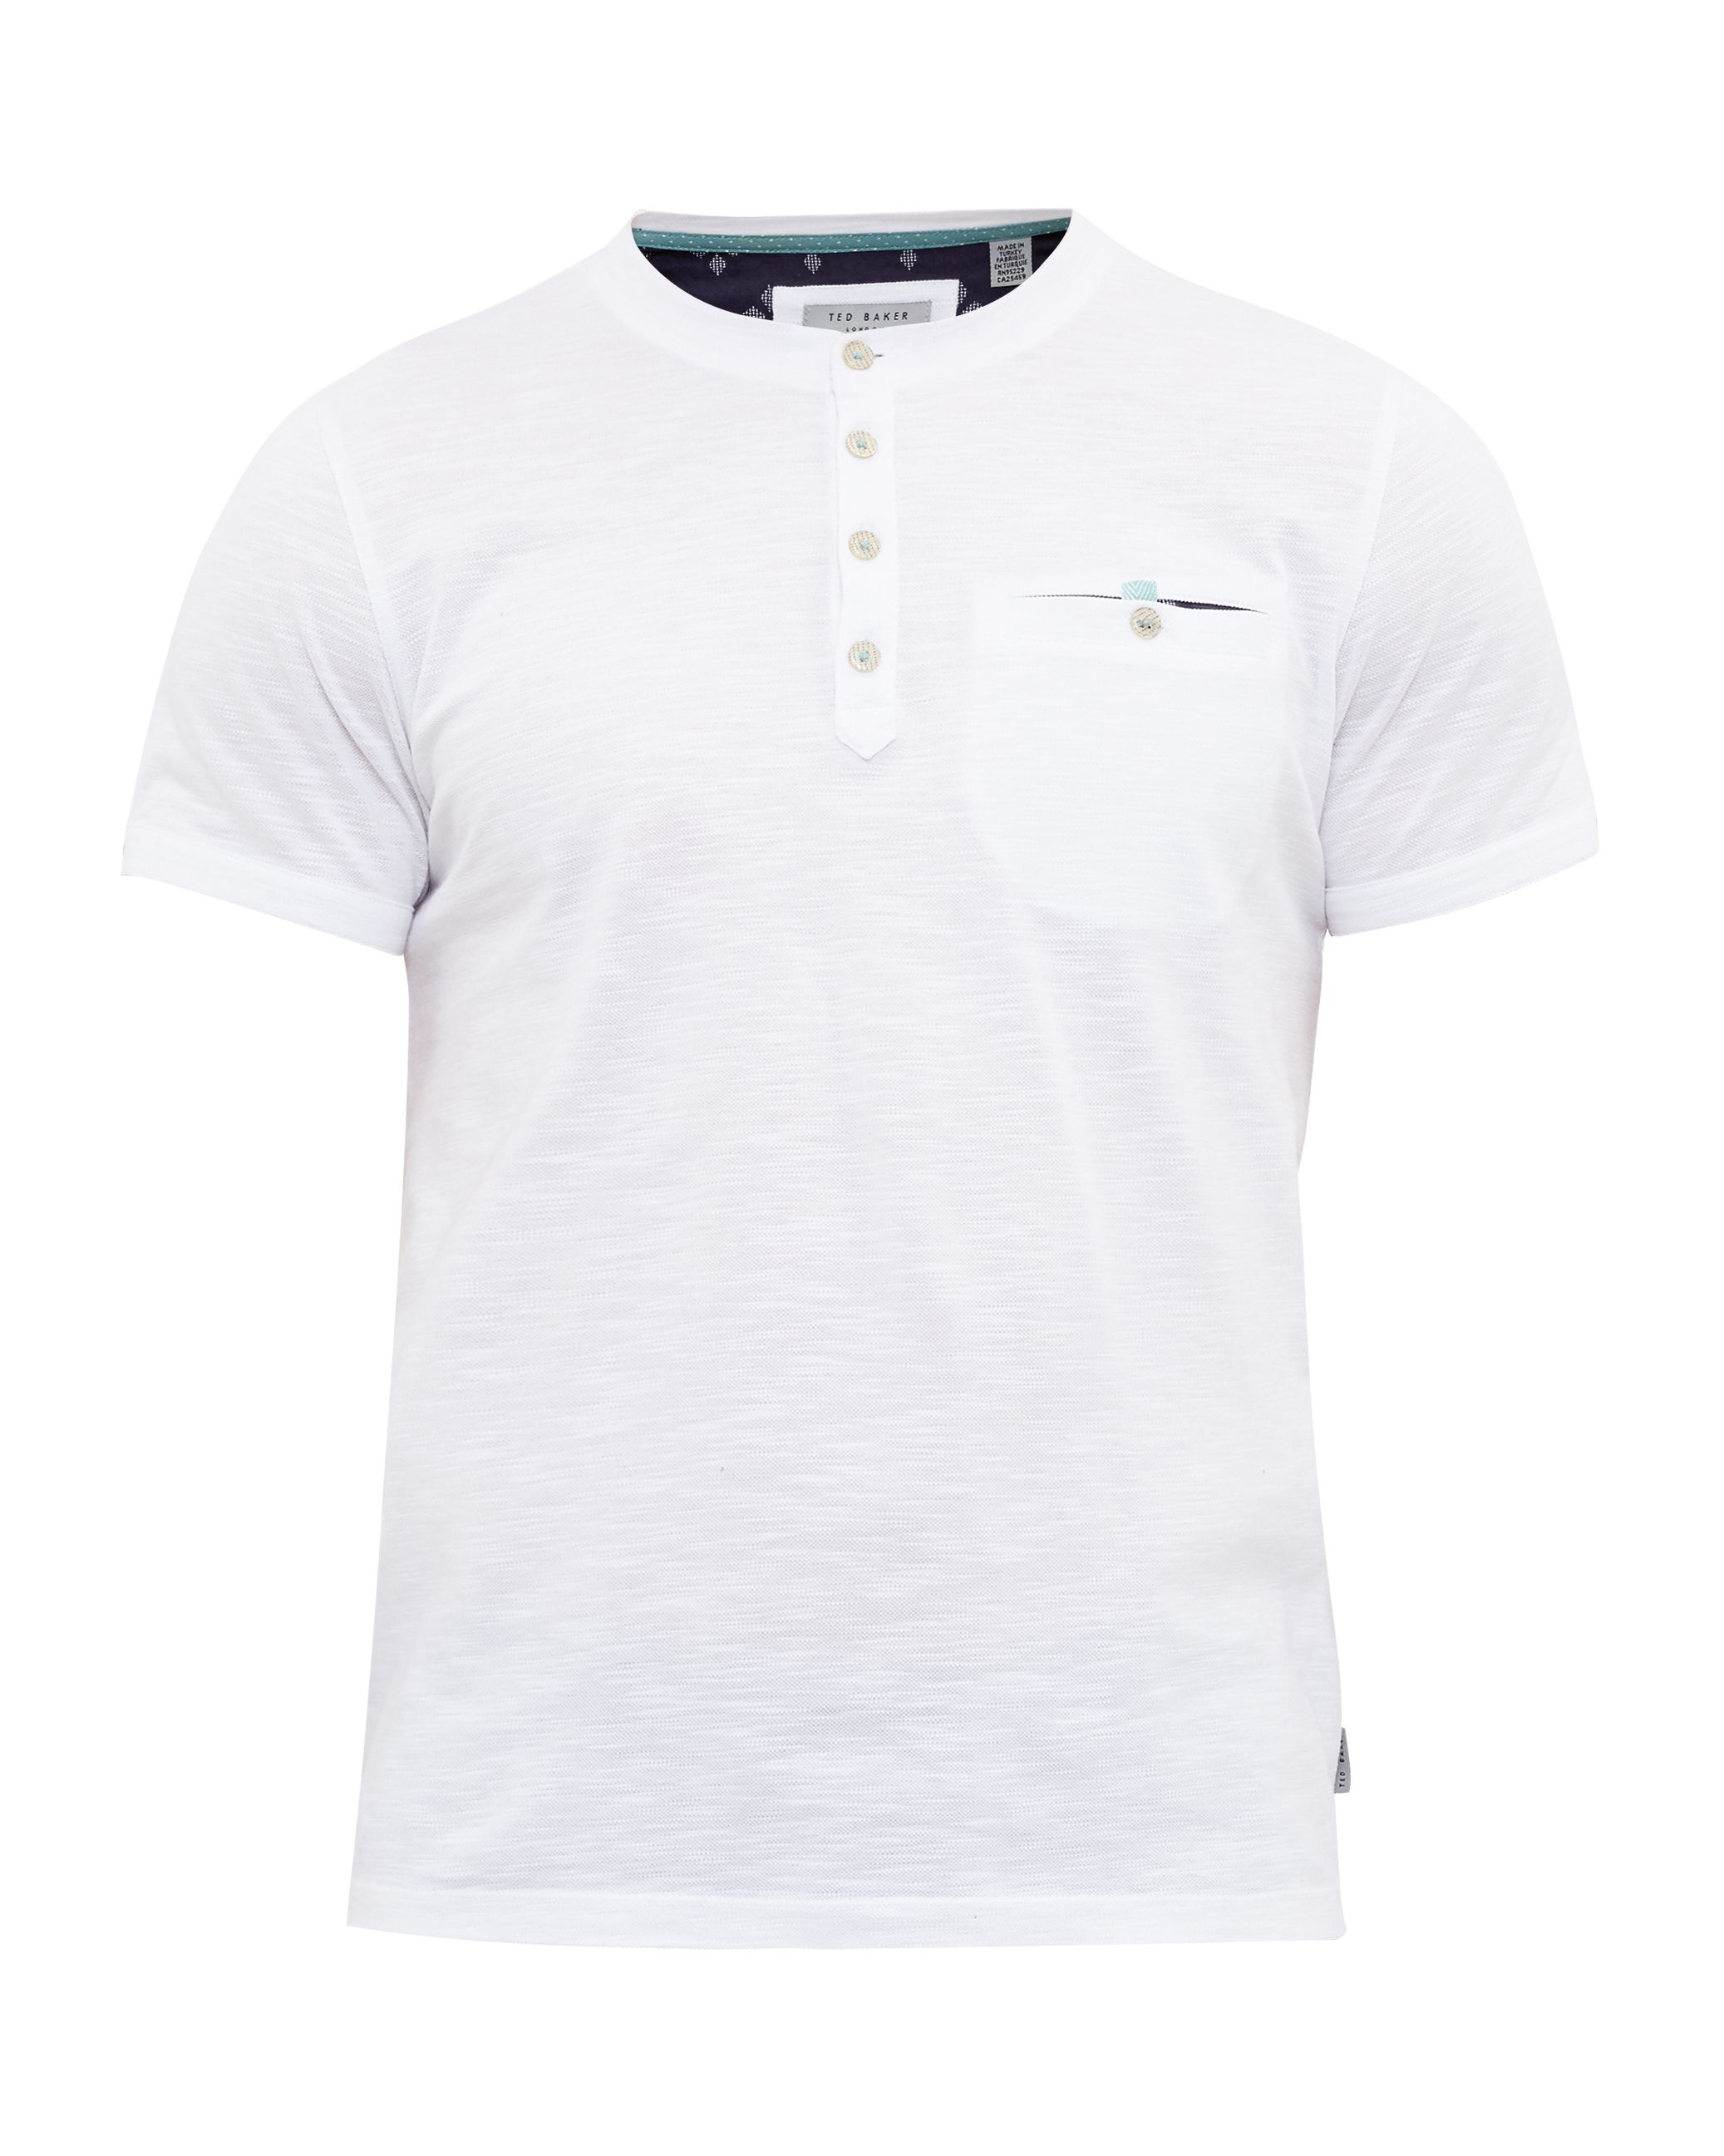 Men's Ted Baker Rocher Cotton Henley T-Shirt, White